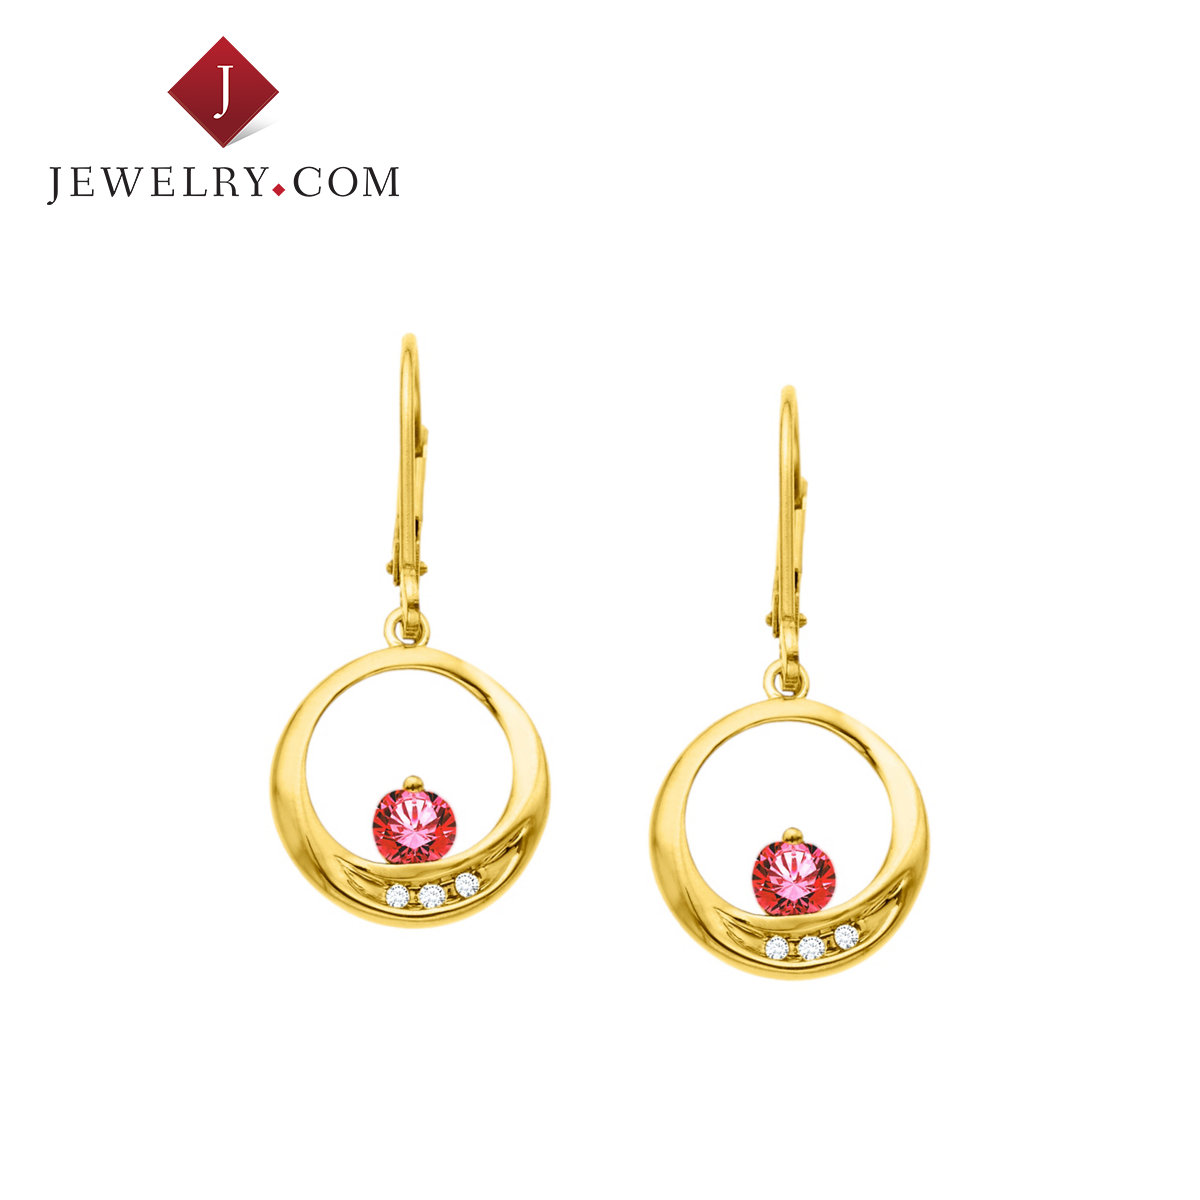 Jewelry.com official ms. elegant fashion 0.375 karat k gold diamond ruby earrings